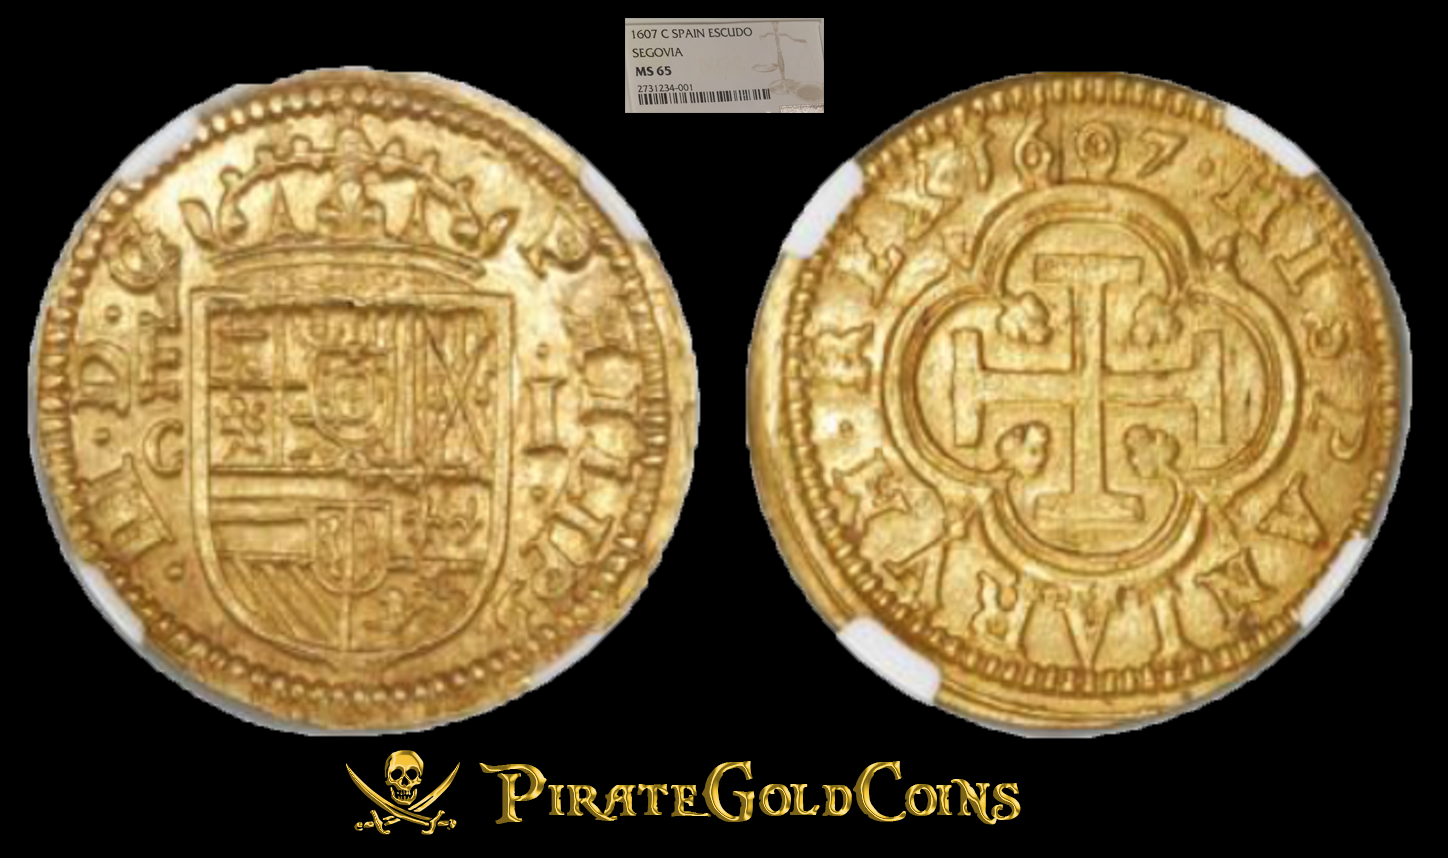 """SPAIN """"FINEST KNOWN of 5"""" 1607 1 ESCUDO NGC 65 GOLD DOUBLOON COB TREASURE COIN"""